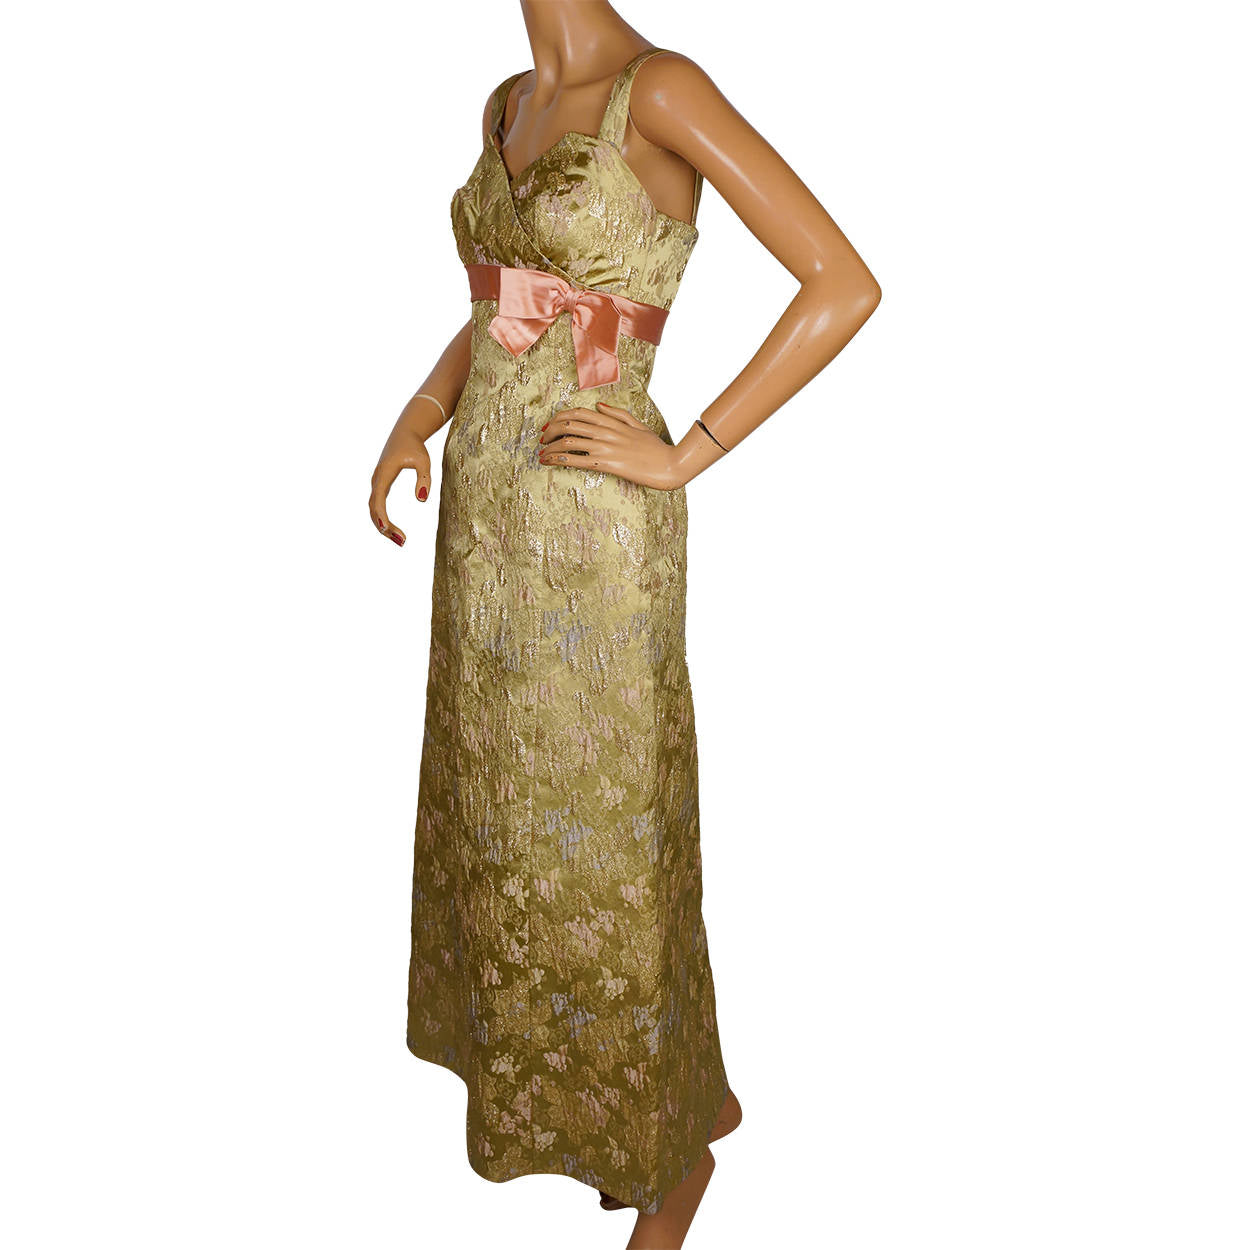 b3e962c943cf Vintage 1960s Evening Gown Gold Lame Brocade Switzerland Long Dress Si